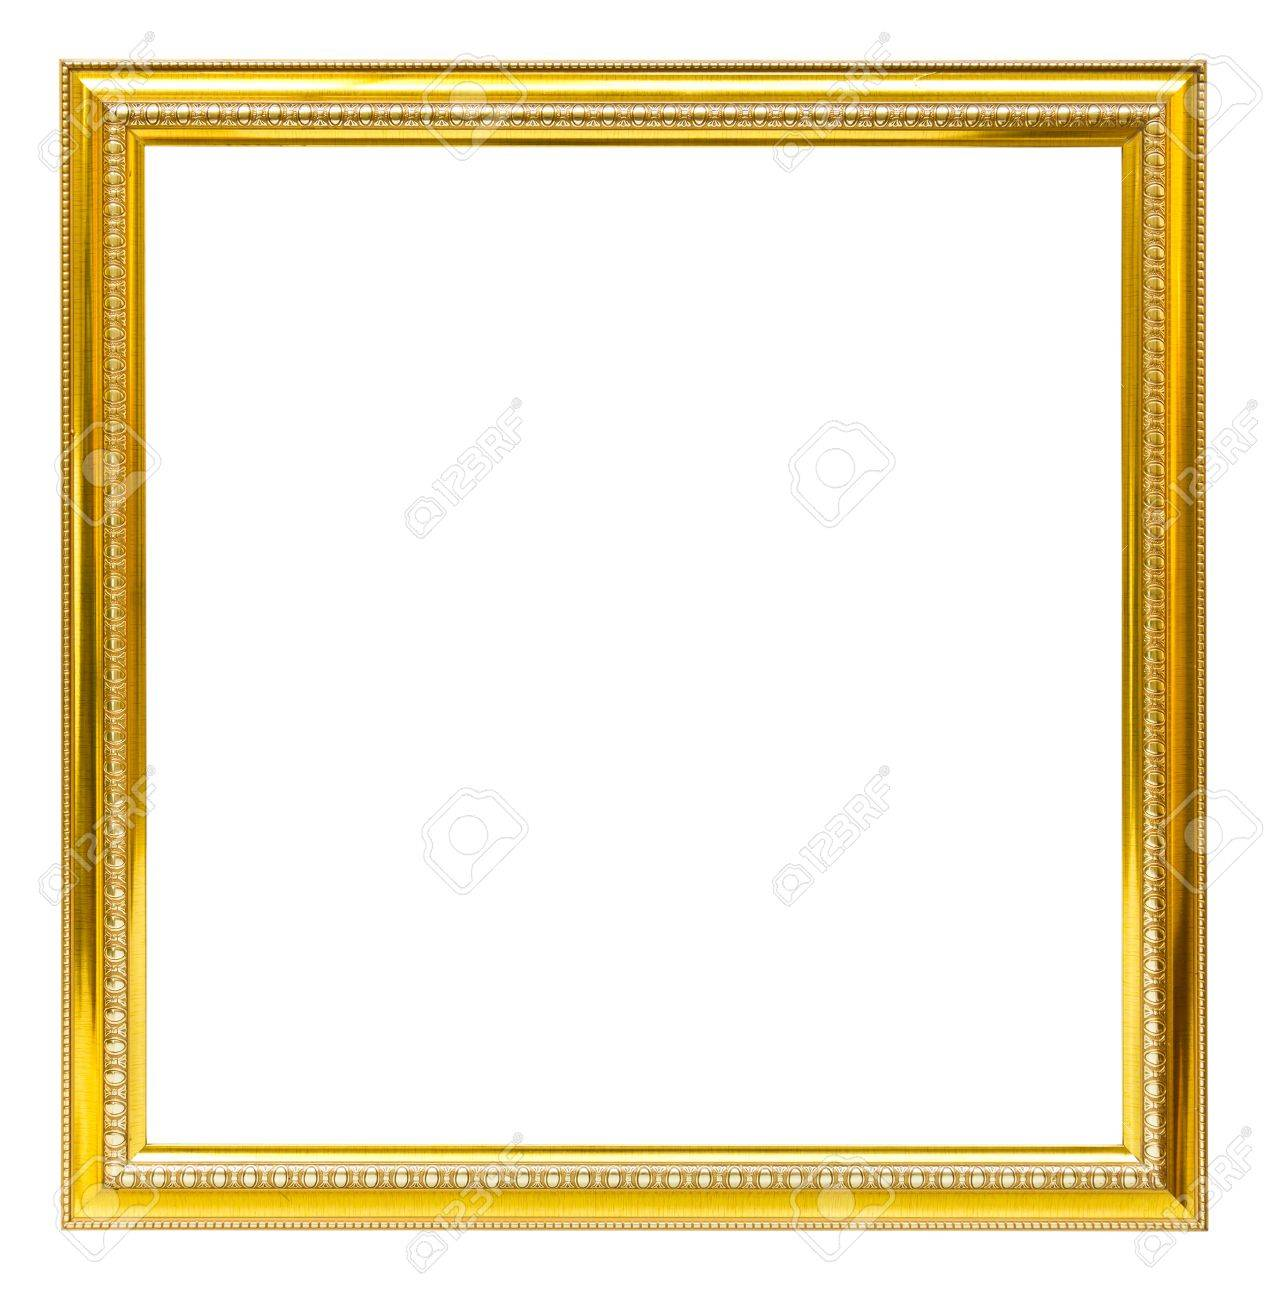 Golden Wood Frame Isolated On White Background Stock Photo, Picture ...